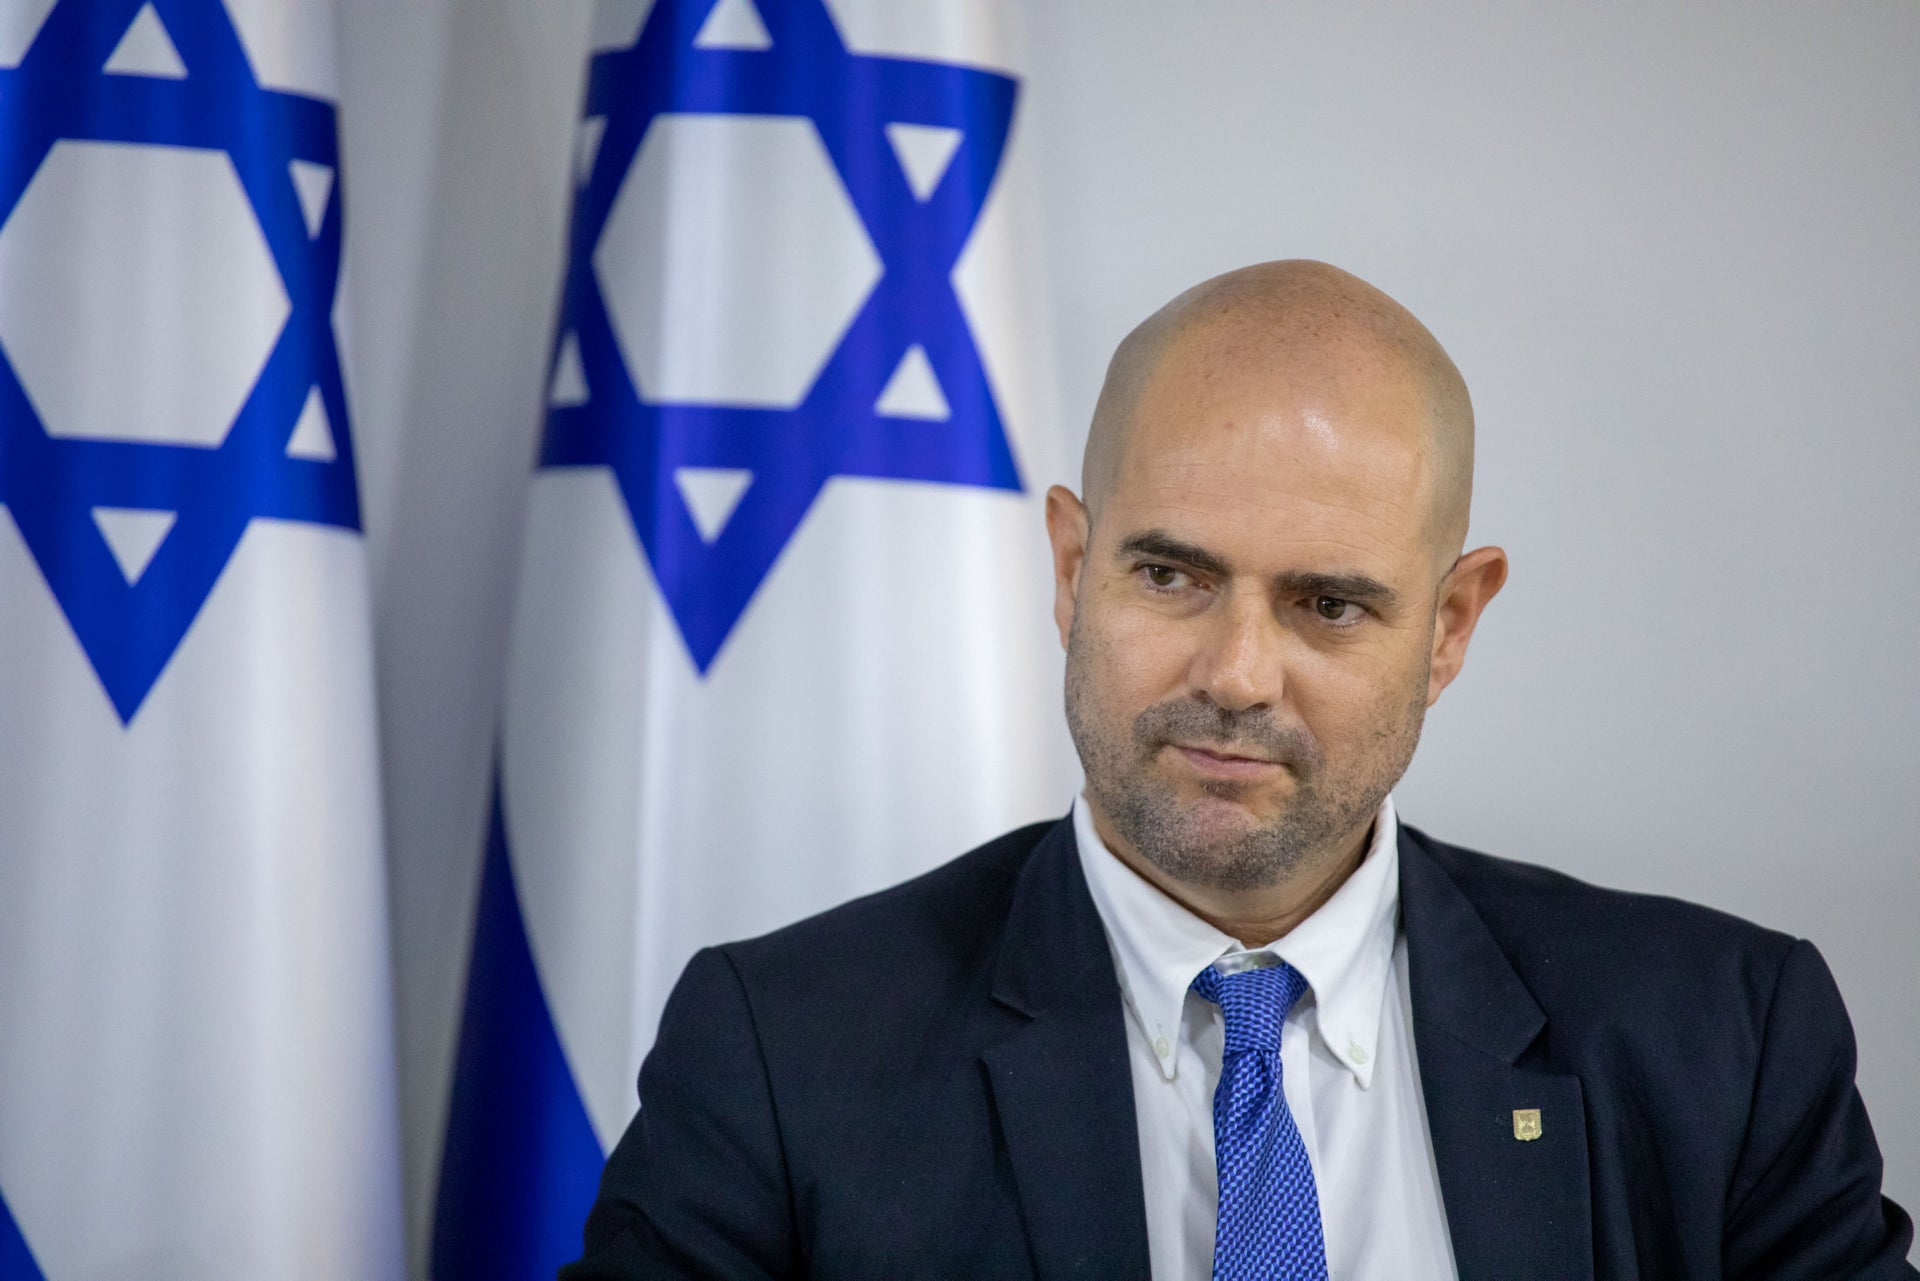 Amir Ohana, Israel's transition justice minister, is close to the new right's political infrastructure and has pushed for loosening Israel's gun laws.